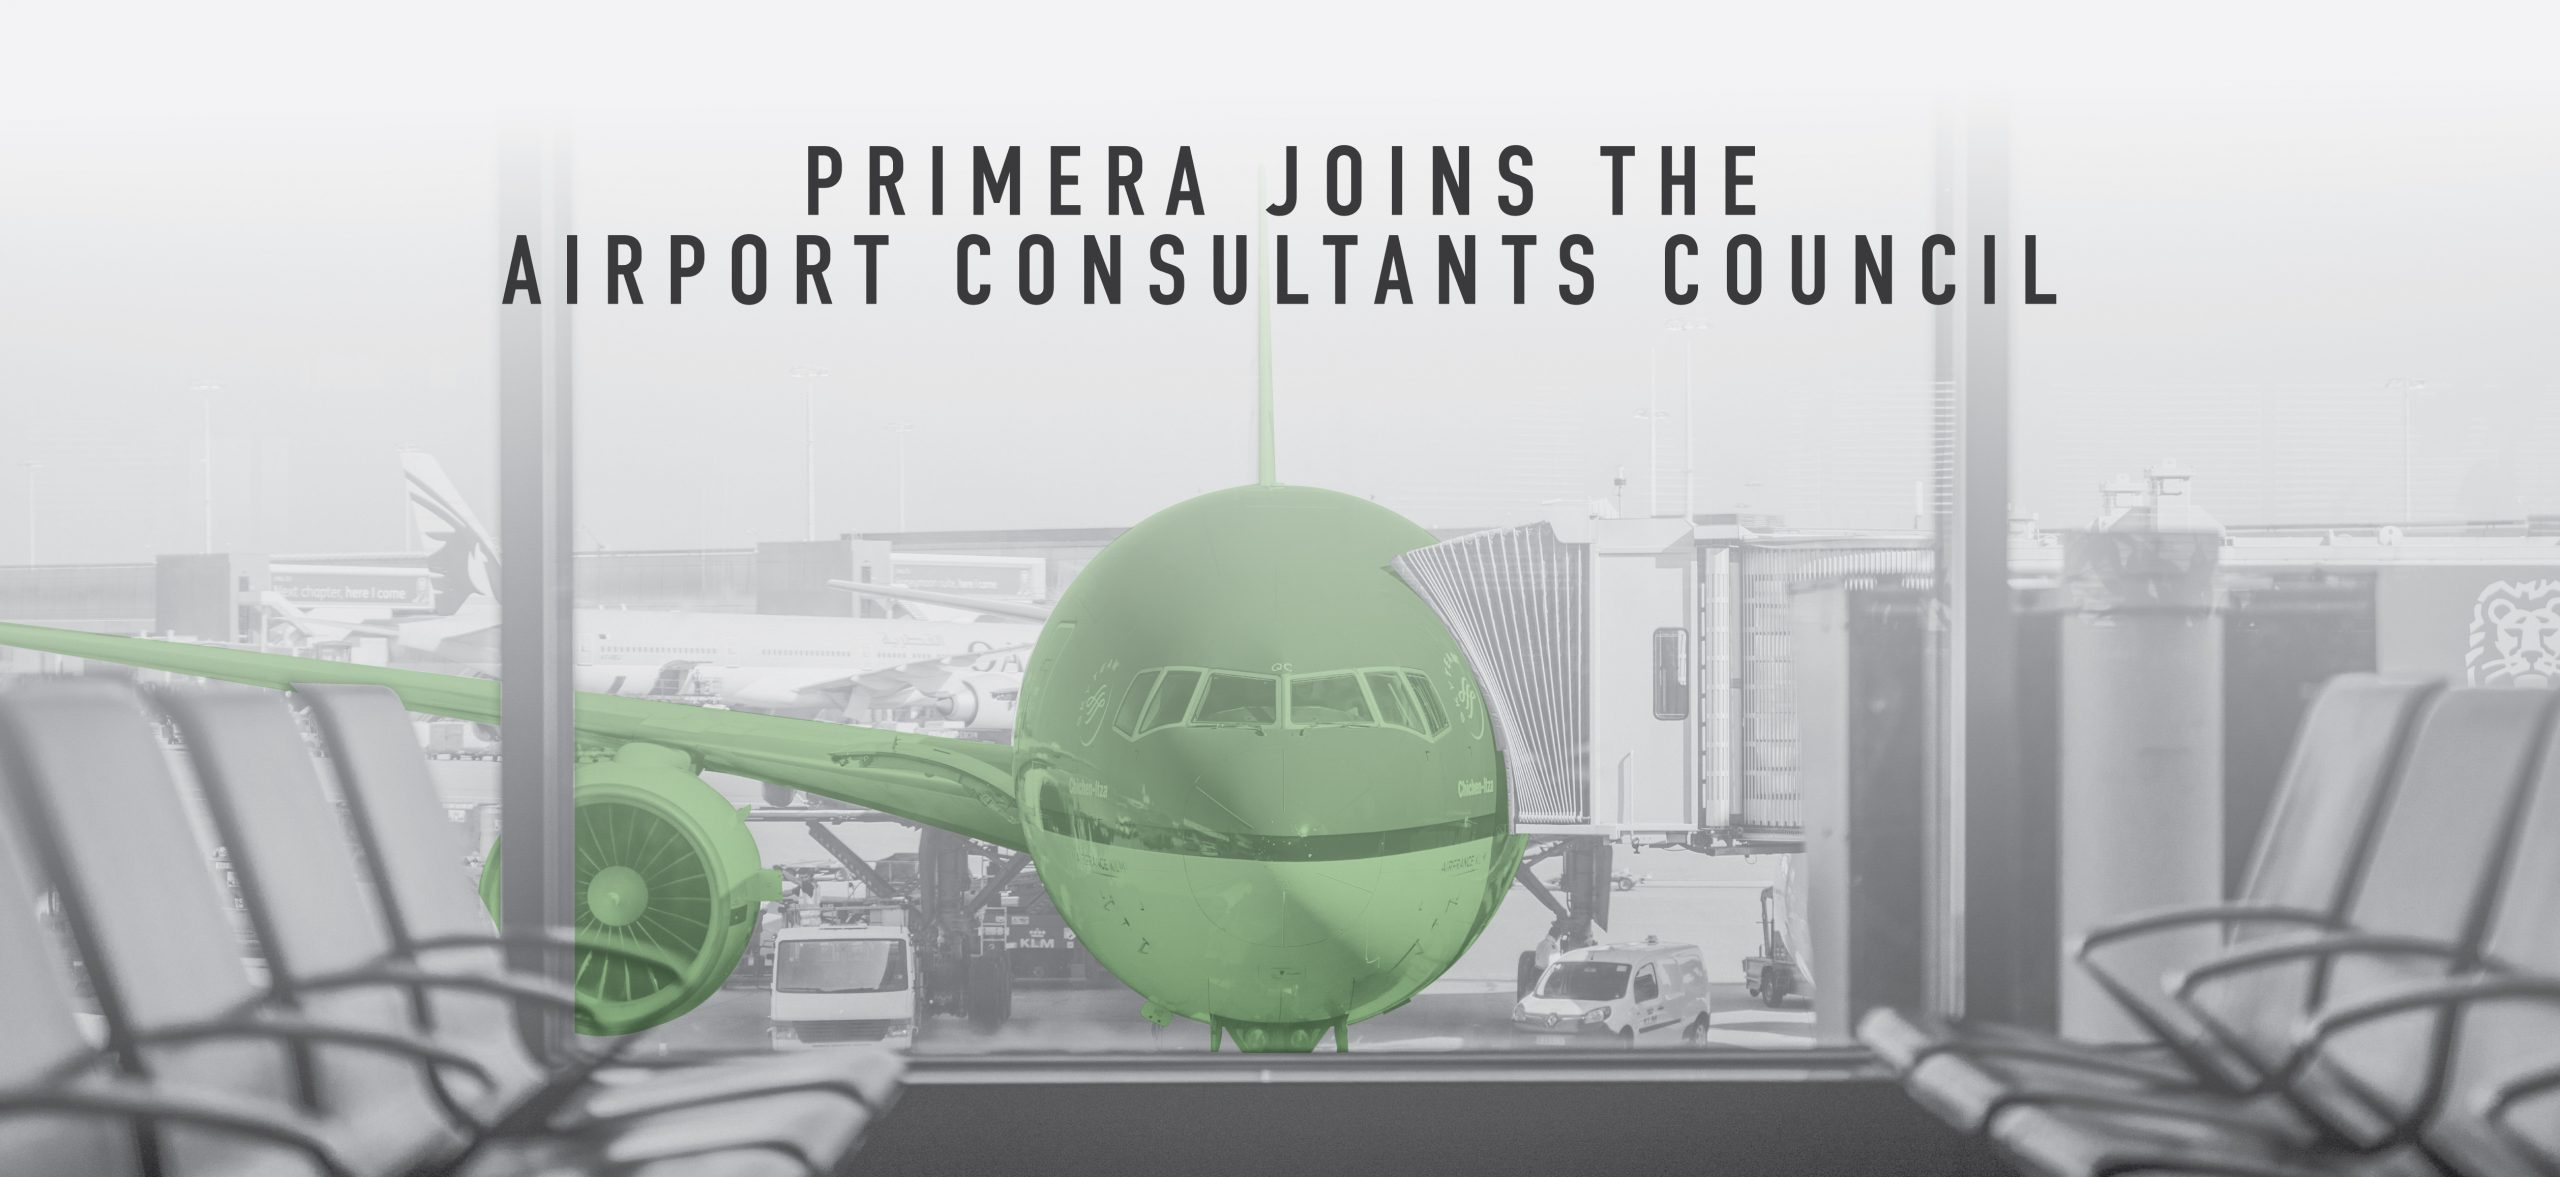 Primera Joins the Airport Consultants Council (ACC)